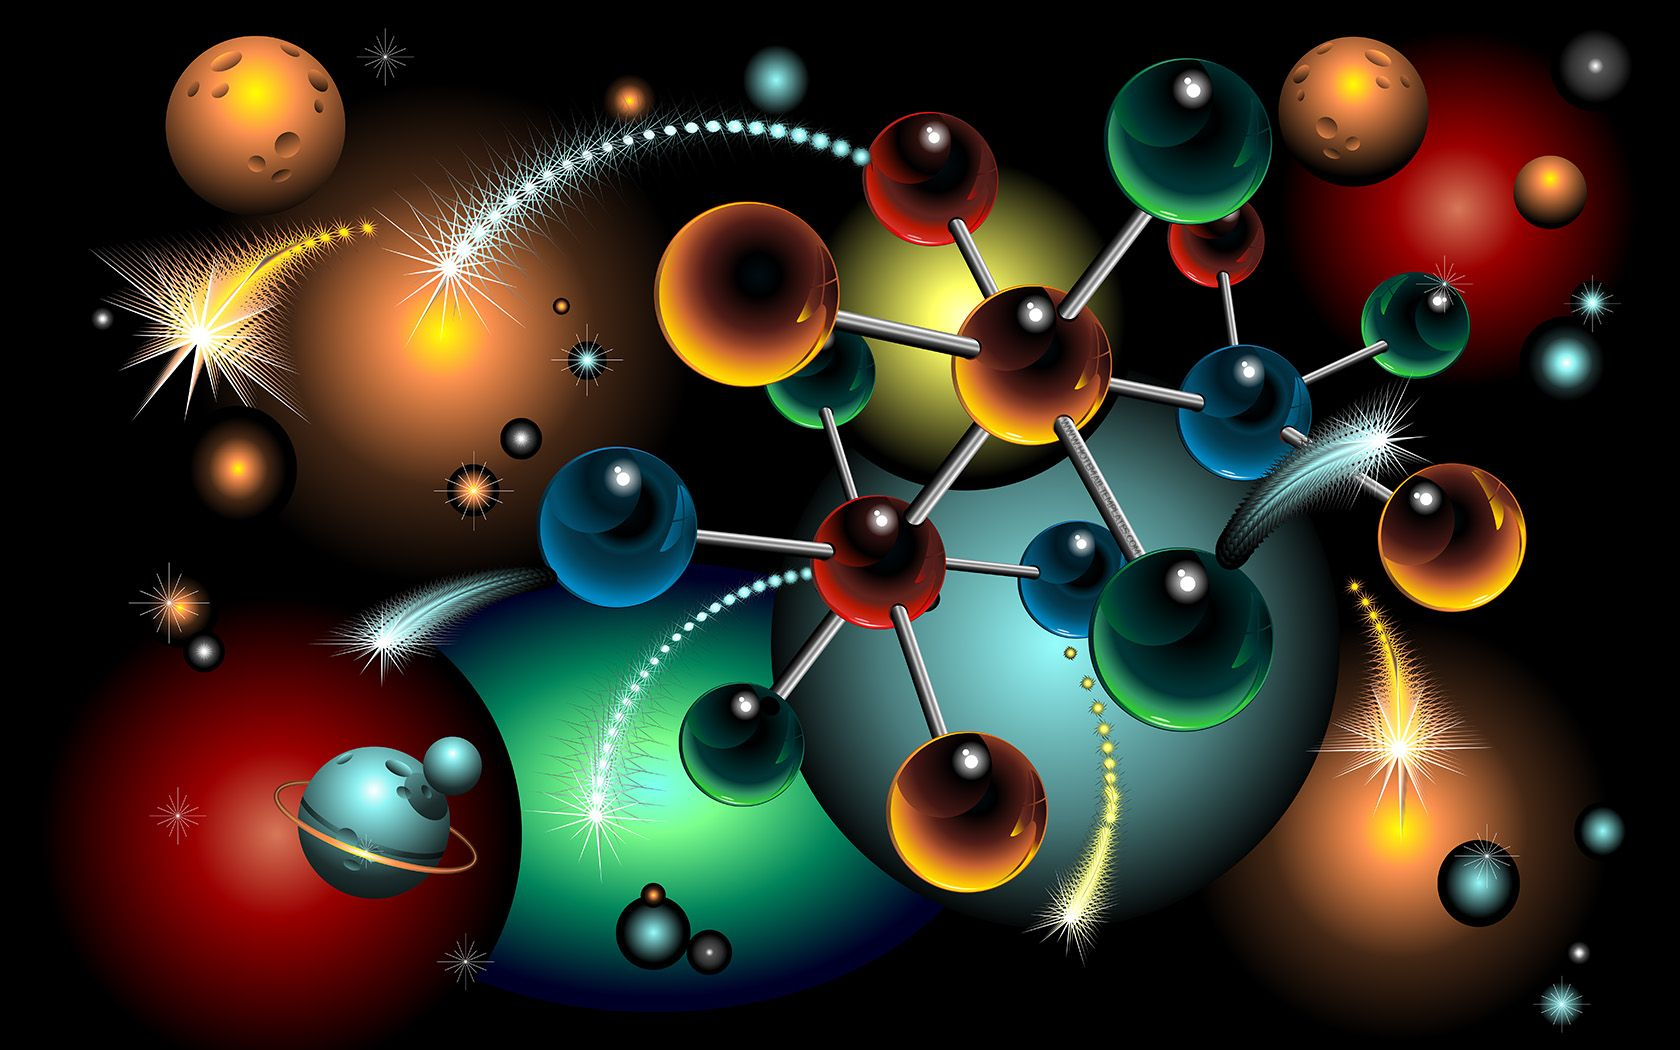 molecules 2 wallpaper - photo #21